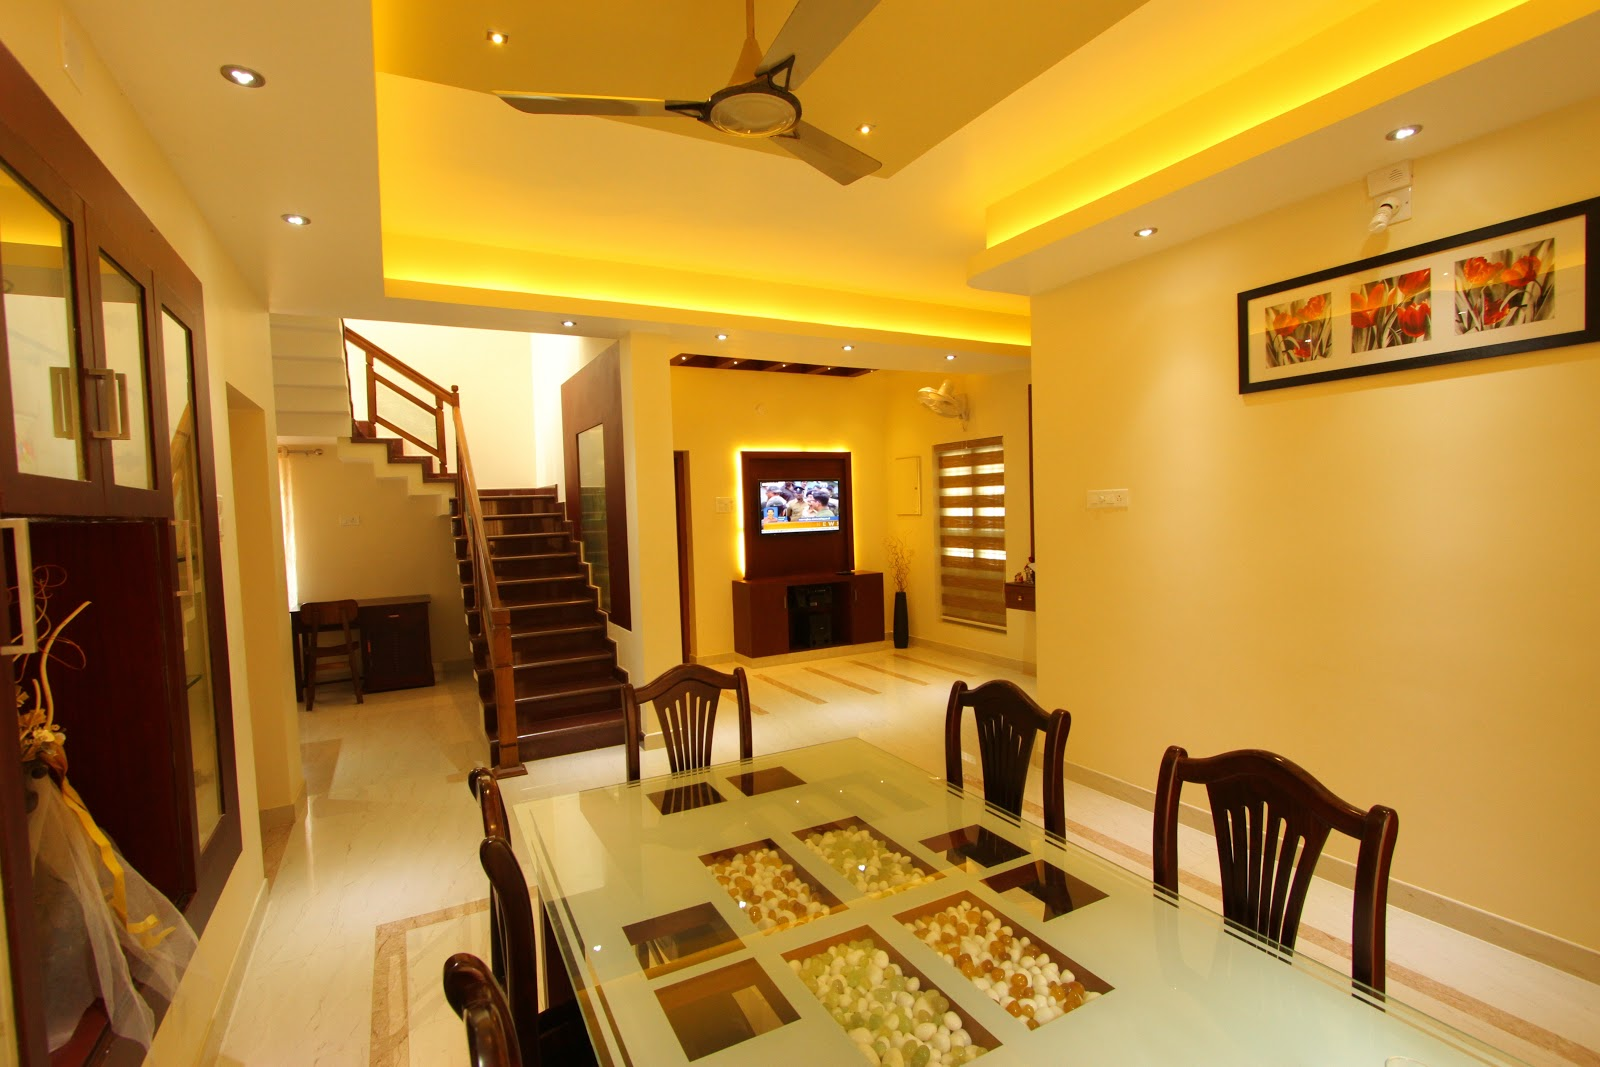 Shilpakala interiors award winning home interior design by shilpakala interiors - Enterear design ...